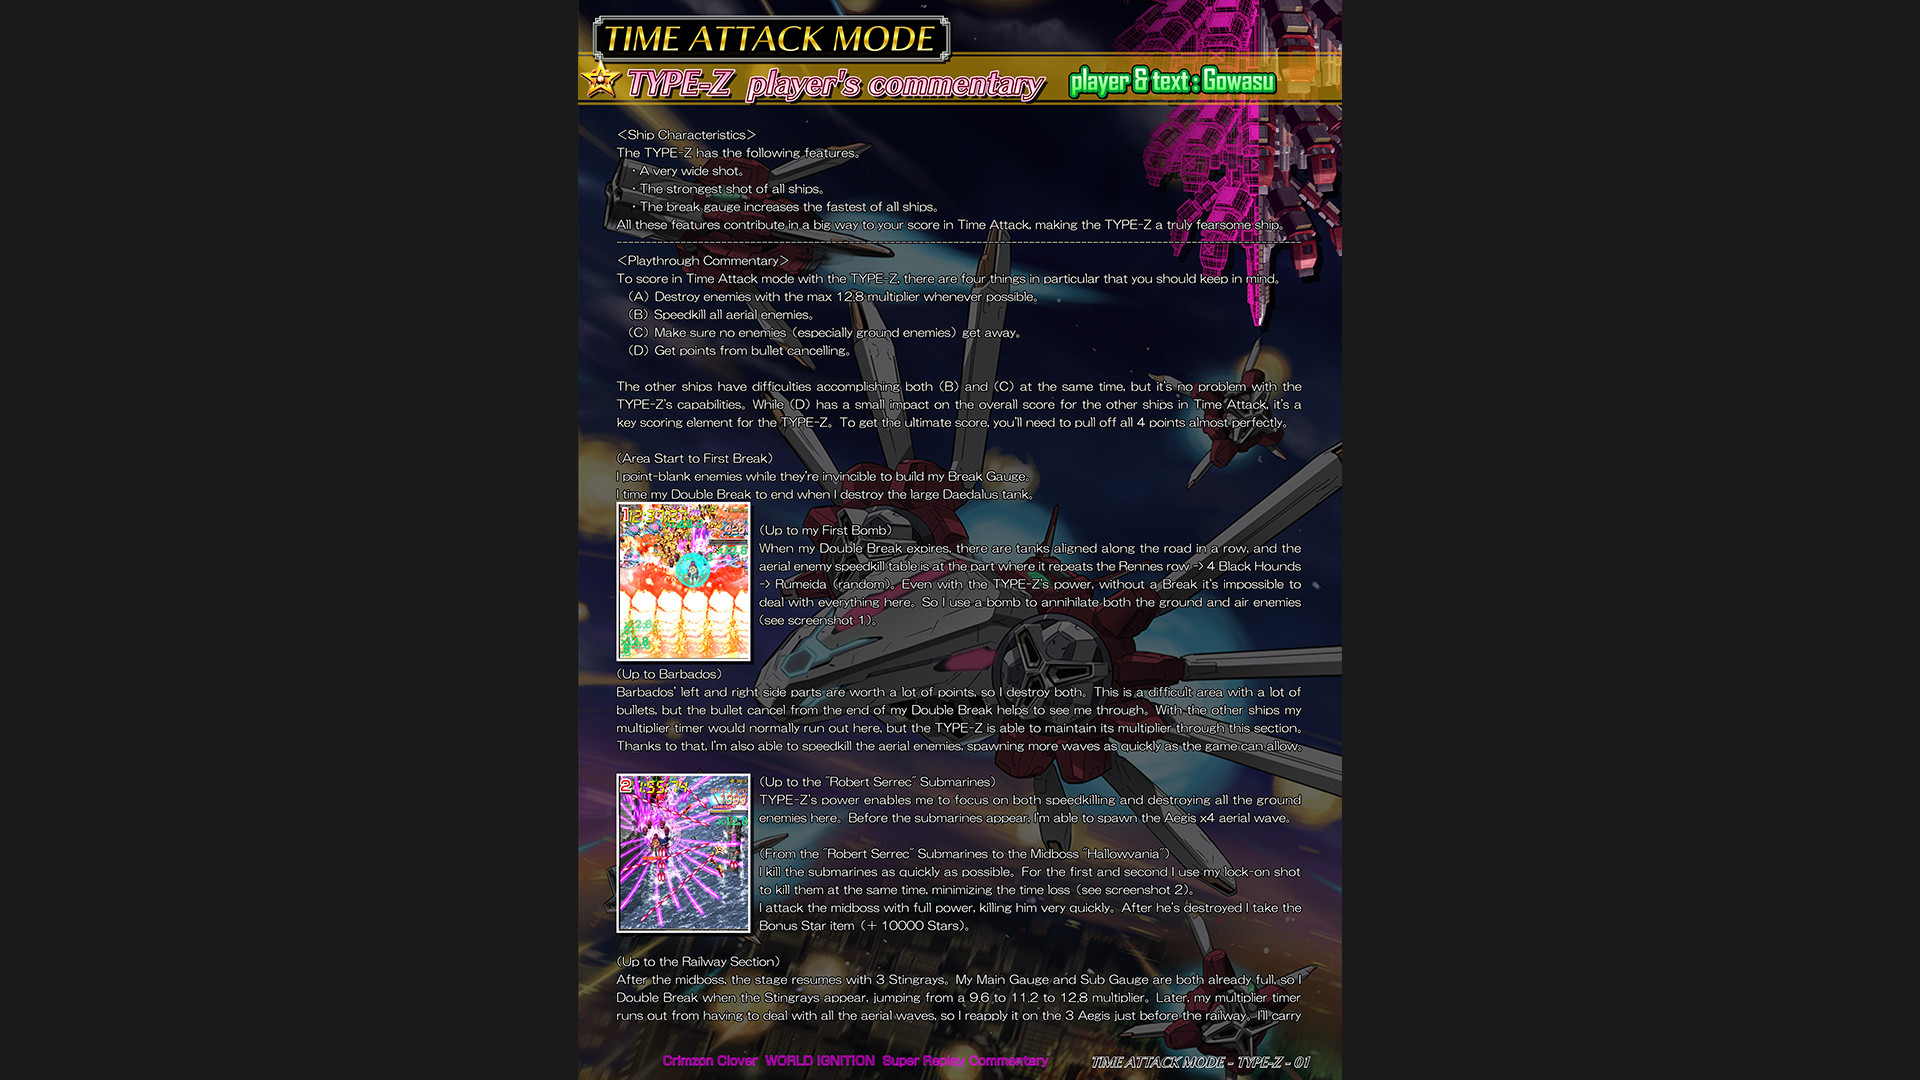 Crimzon Clover WORLD IGNITION - Superplay Strategy Guide screenshot